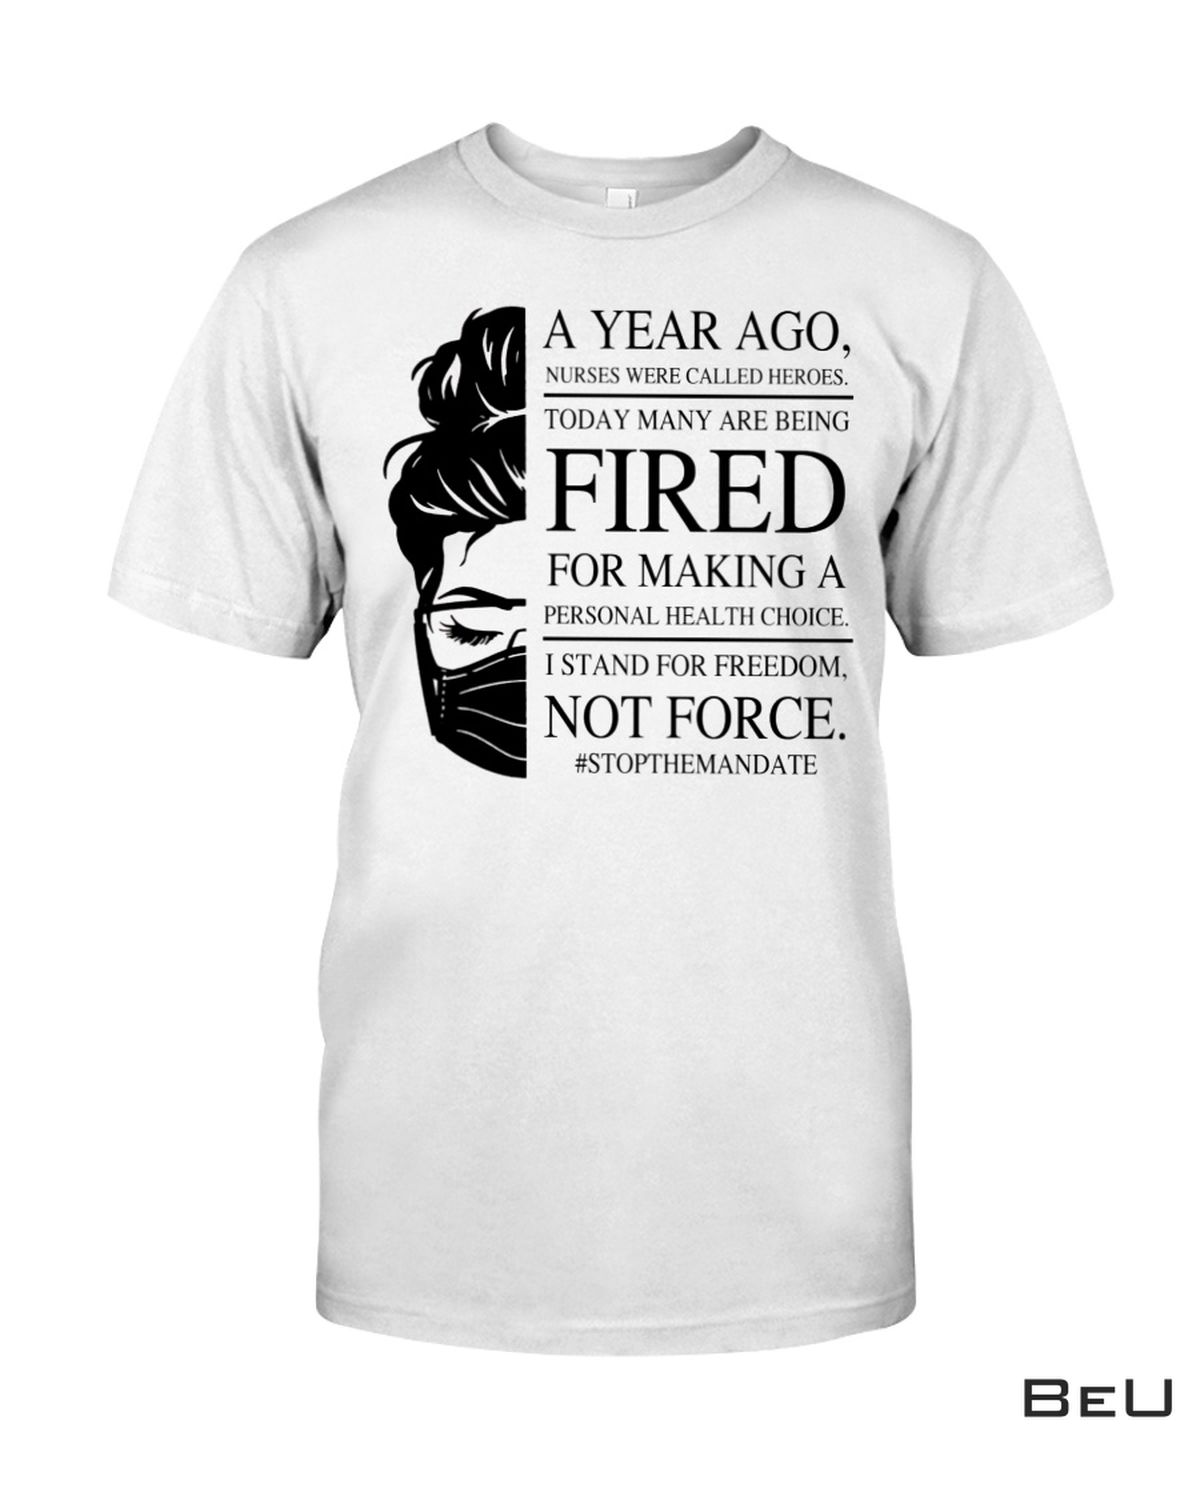 Today Many Are Being Fired For Making A Personal Health Choice Shirt, hoodie, tank top